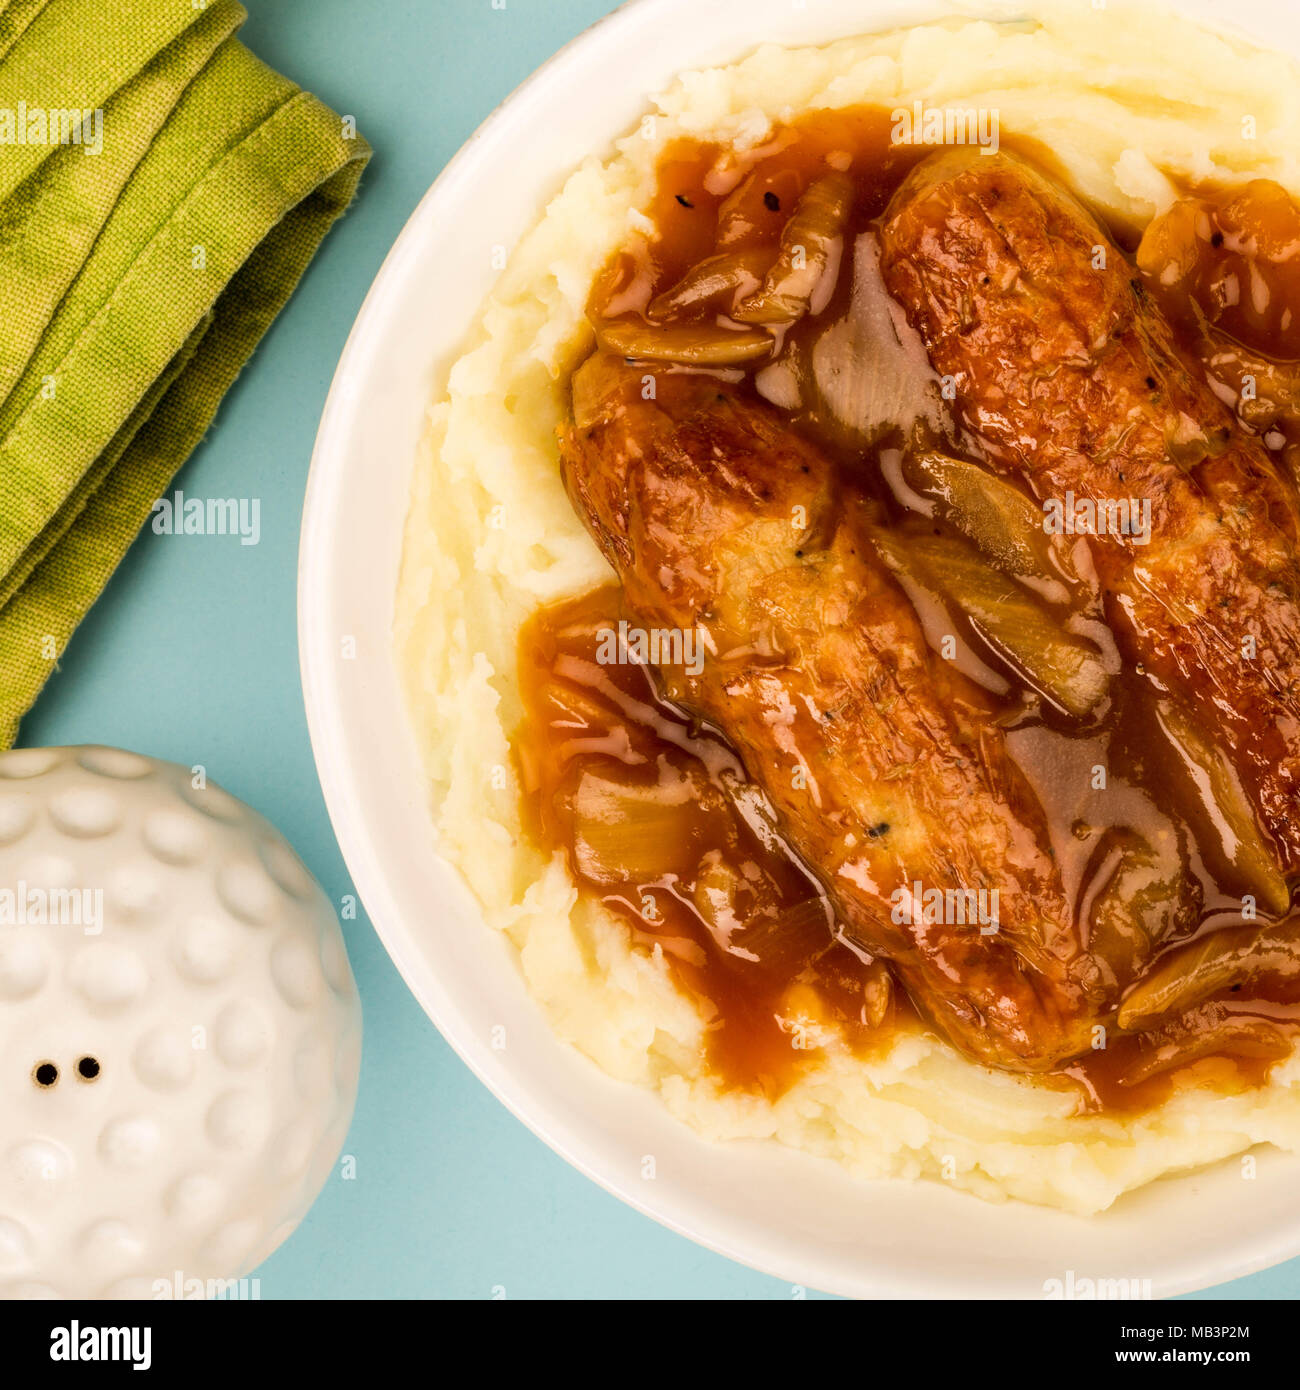 Sausage And Mashed Potatoes With Onion Gravy Against A Blue Background - Stock Image